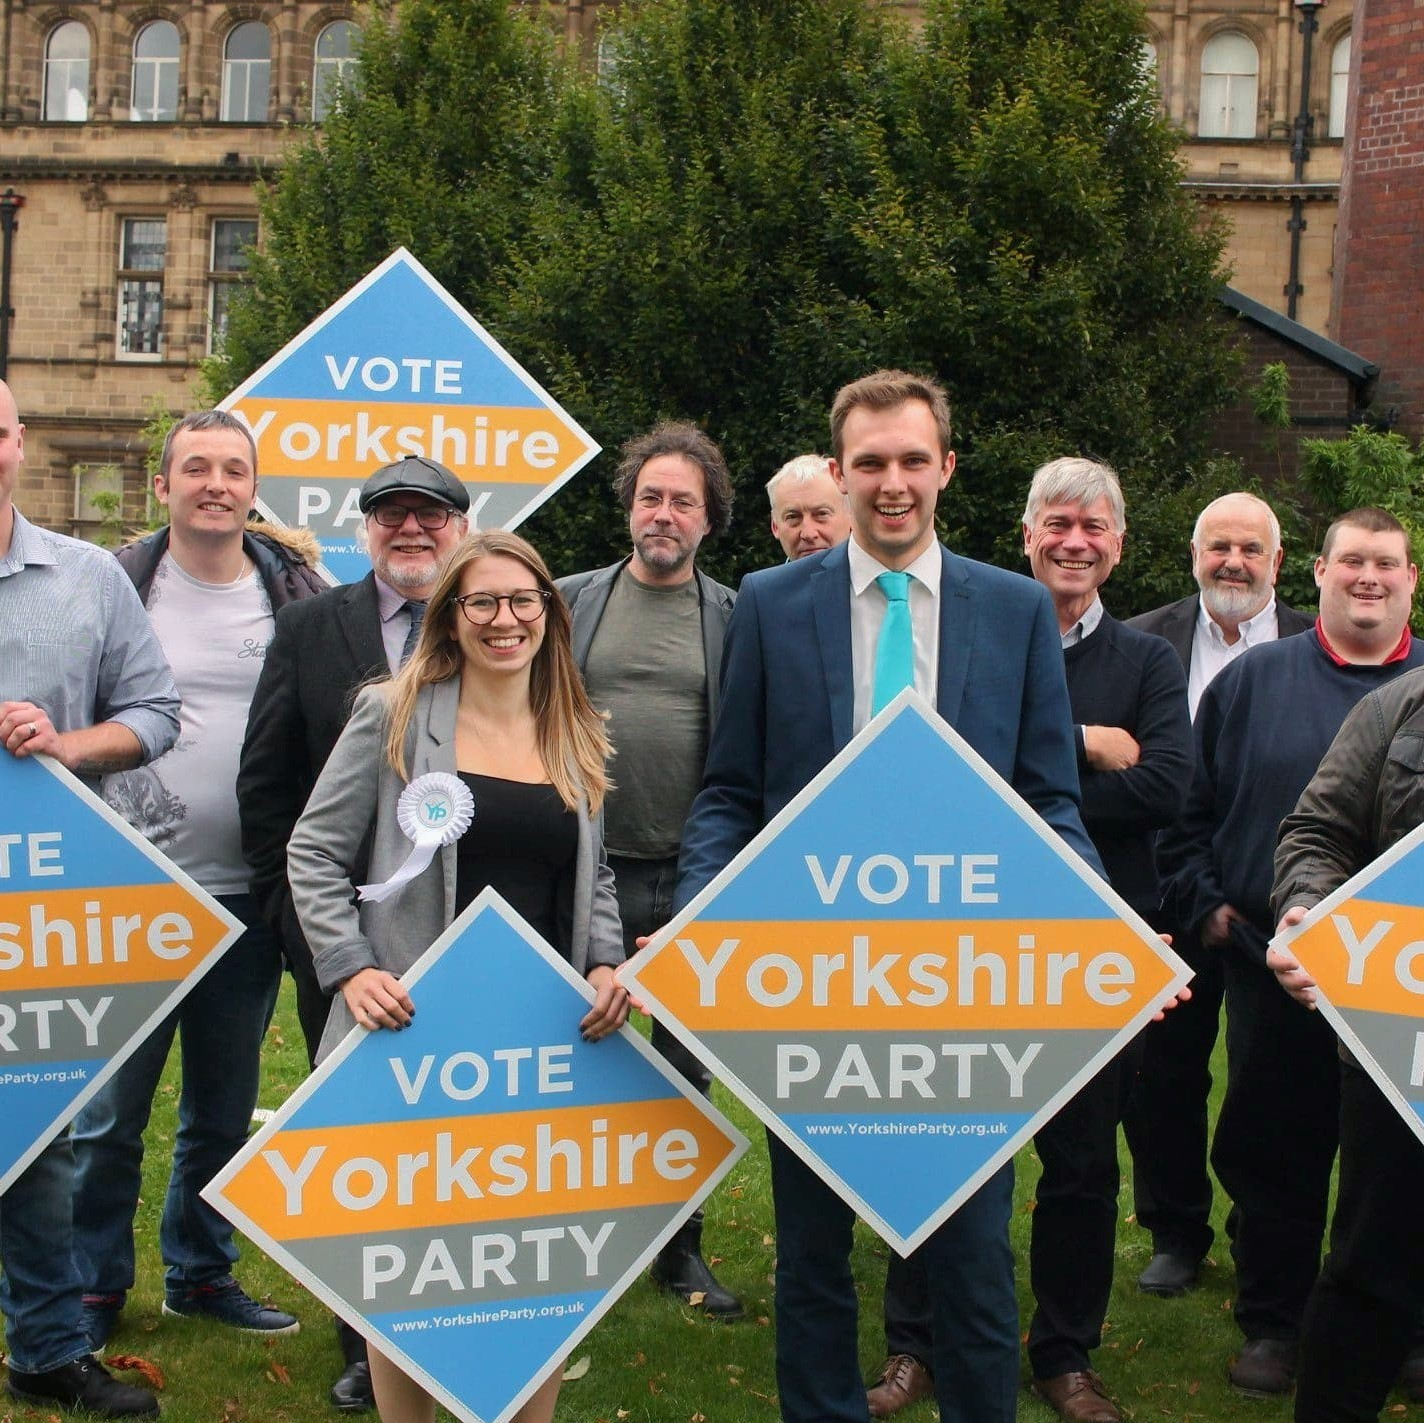 Yorkshire Party candidates standing in the General Election with leader Chris Whitwood at the front